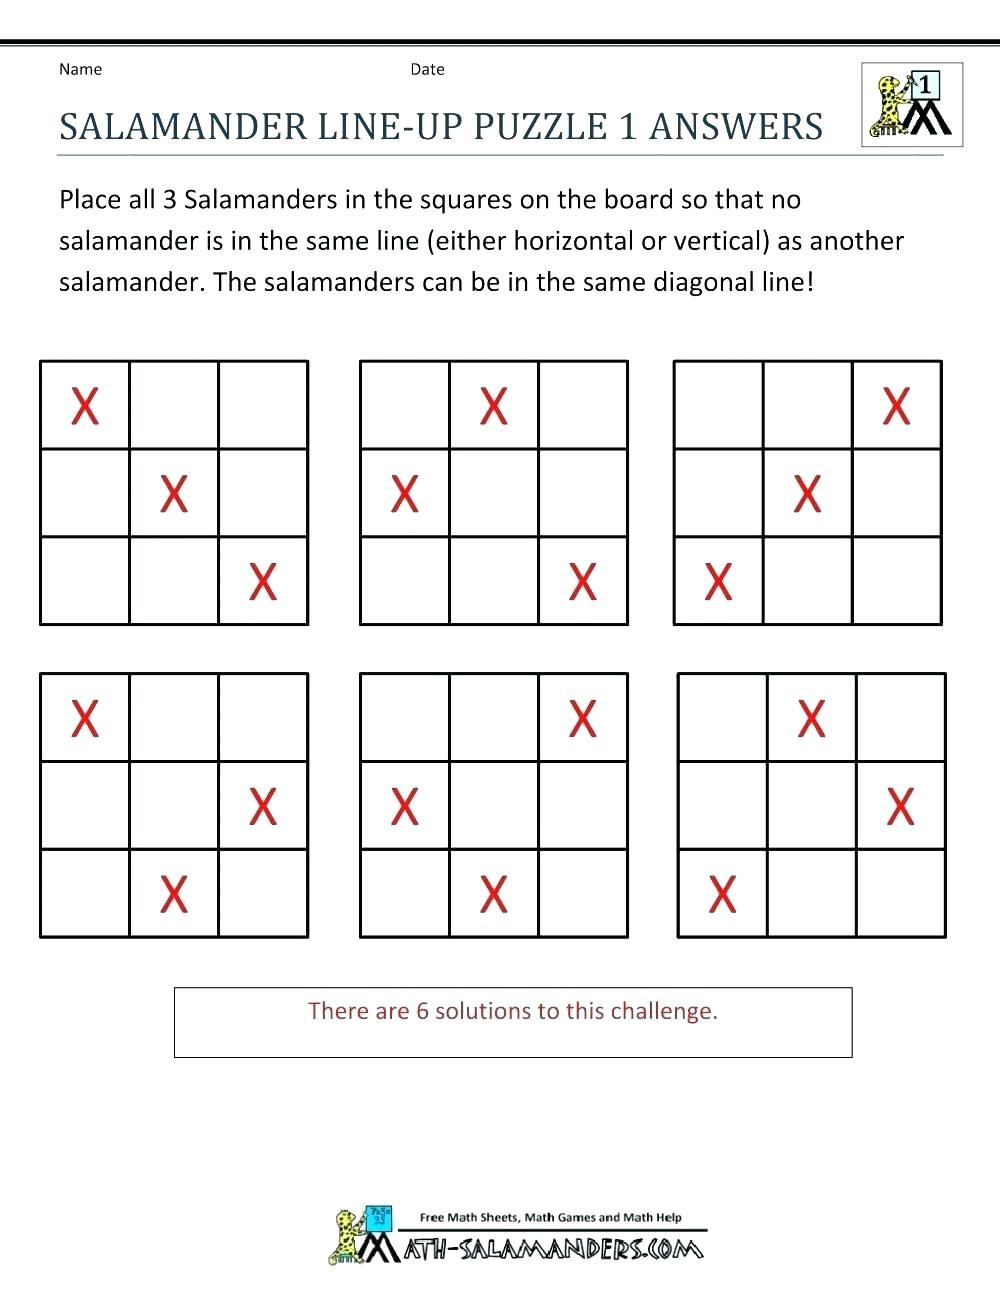 3rd Grade Brain Teasers Worksheets Printable Brain Teasers for Kids Drawing Puzzle